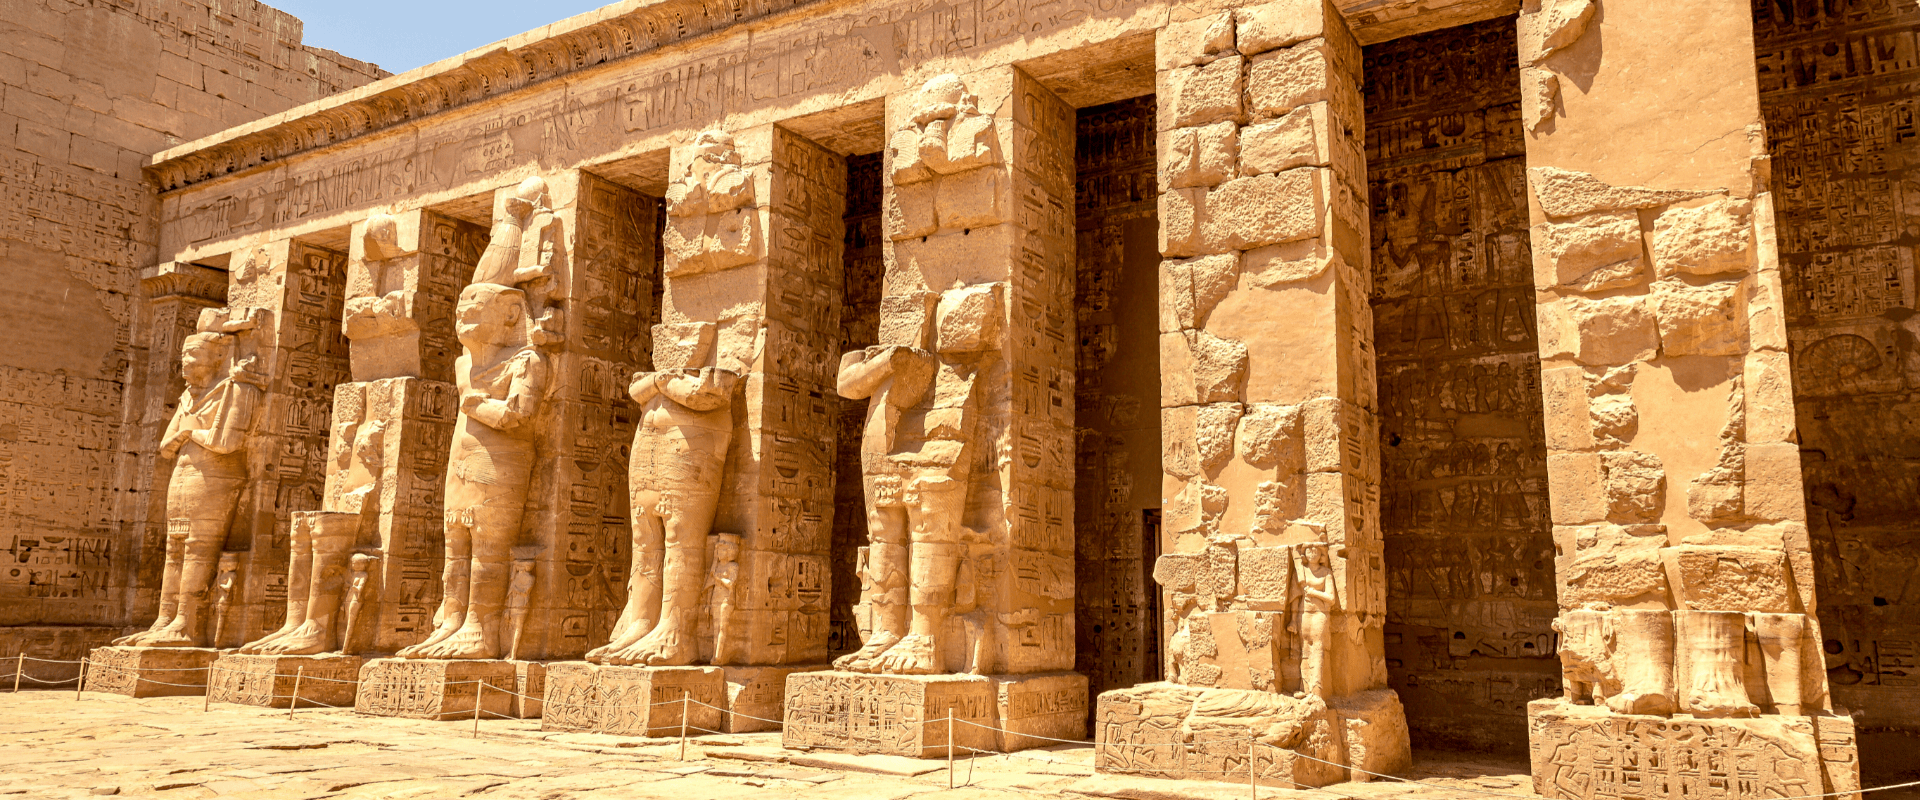 Best of Egypt Tour with Nile Cruise